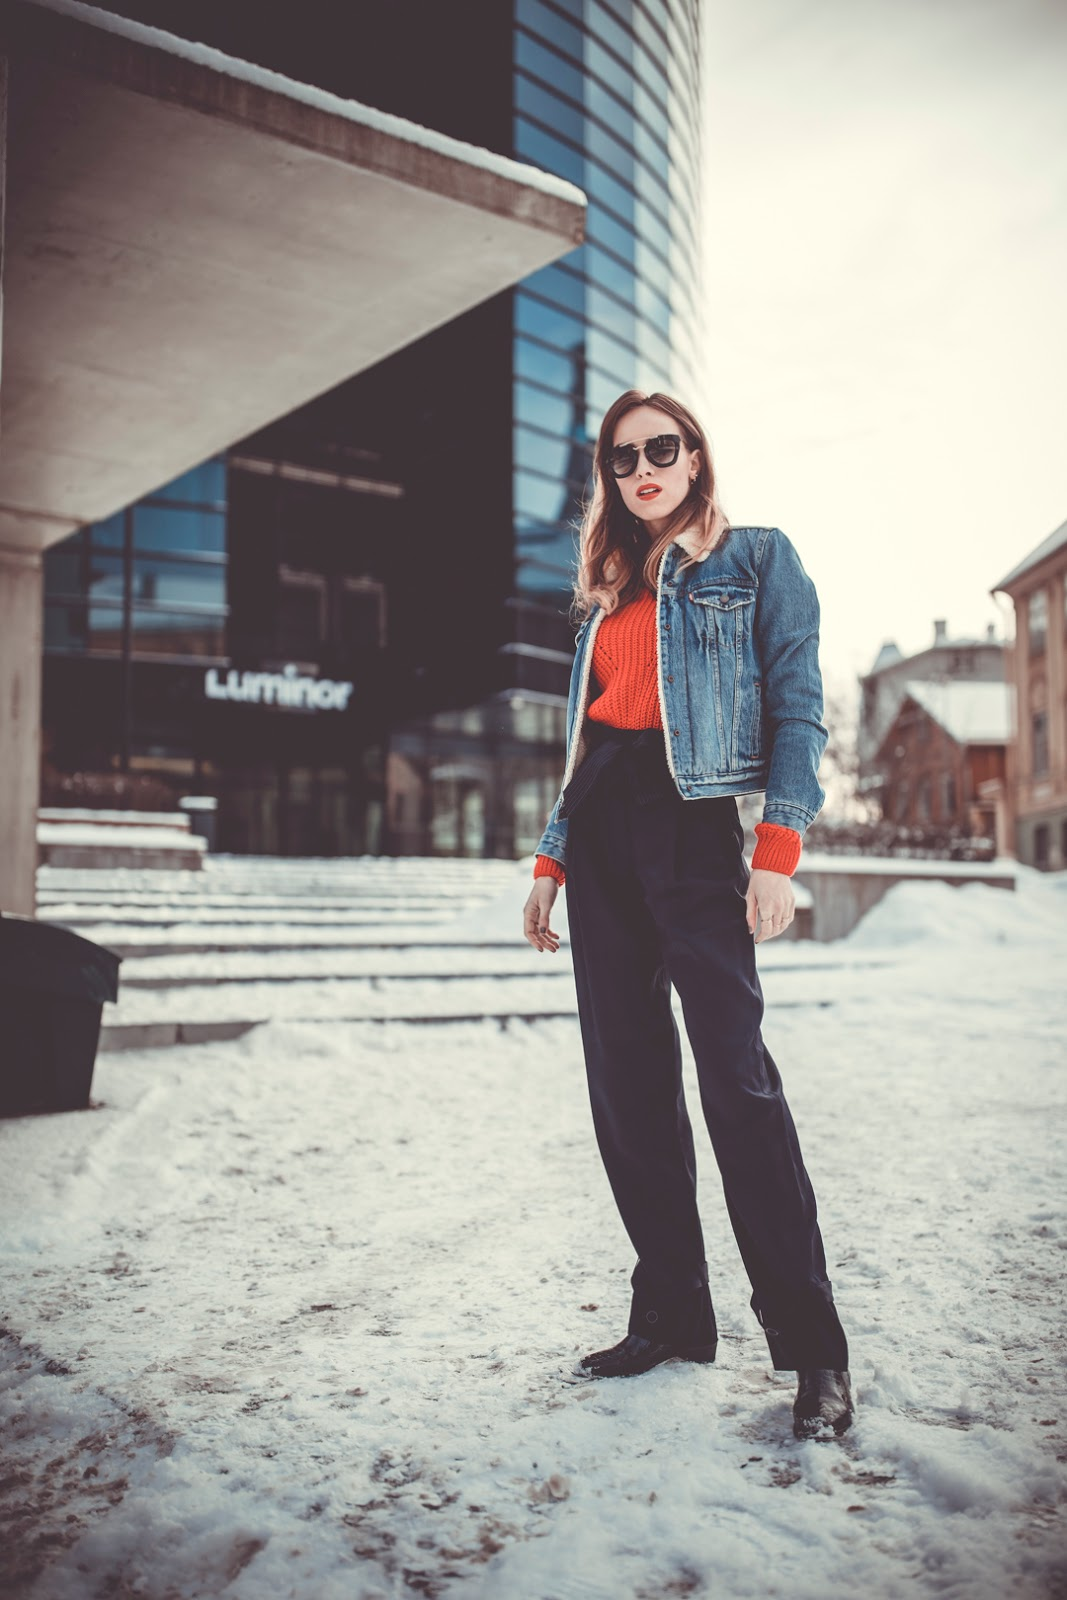 levis denim jacket over sweater outfit winter